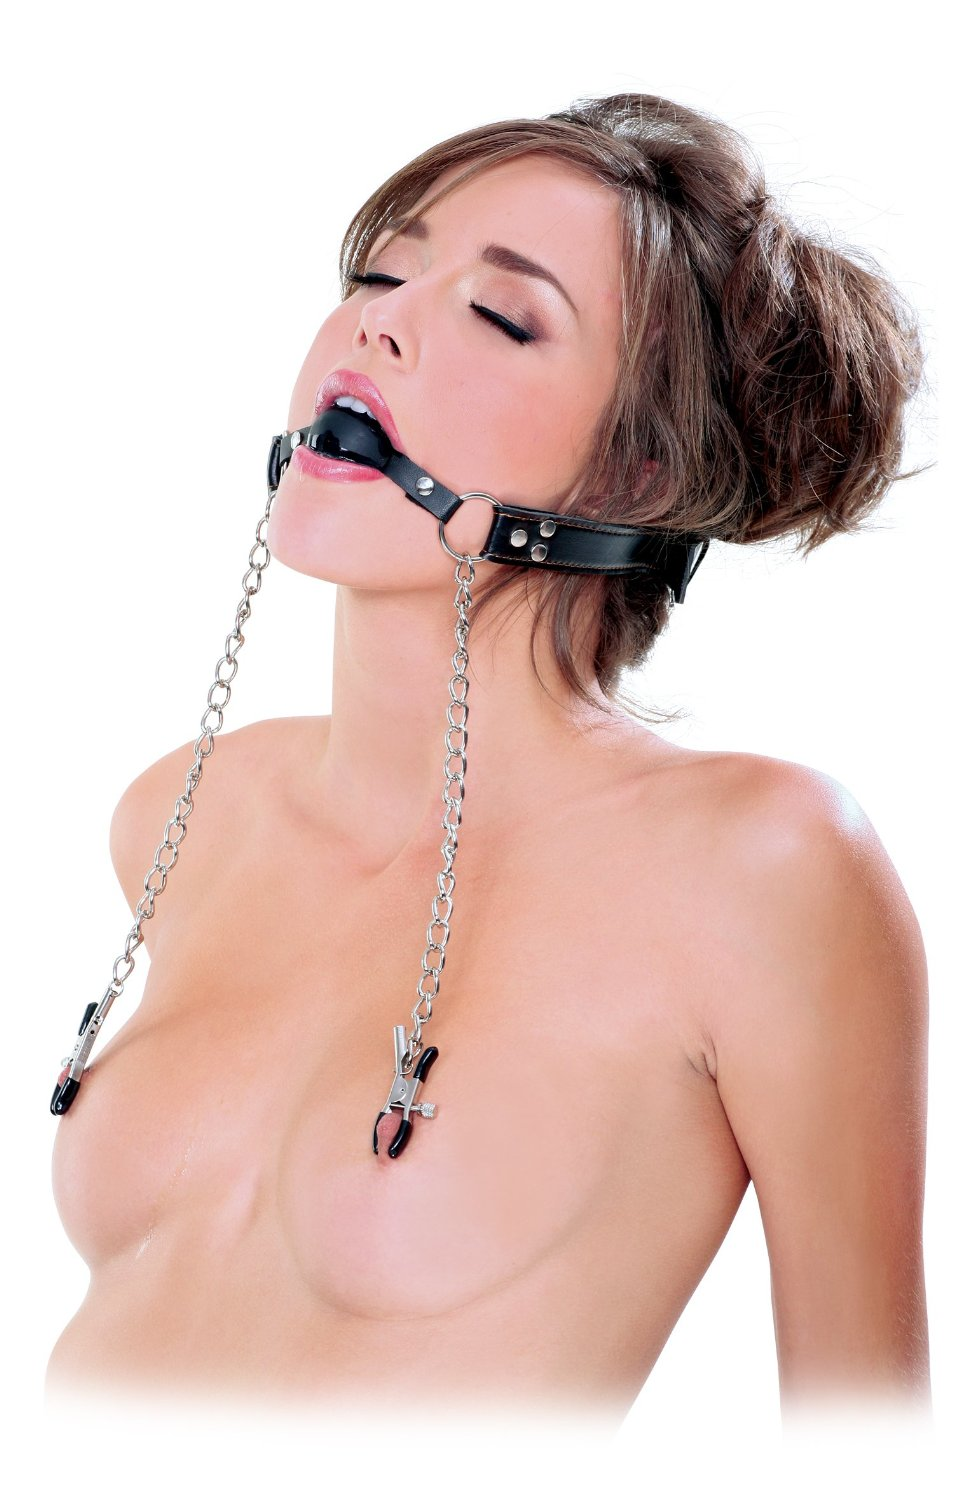 Nipple Clamps Porn Photo